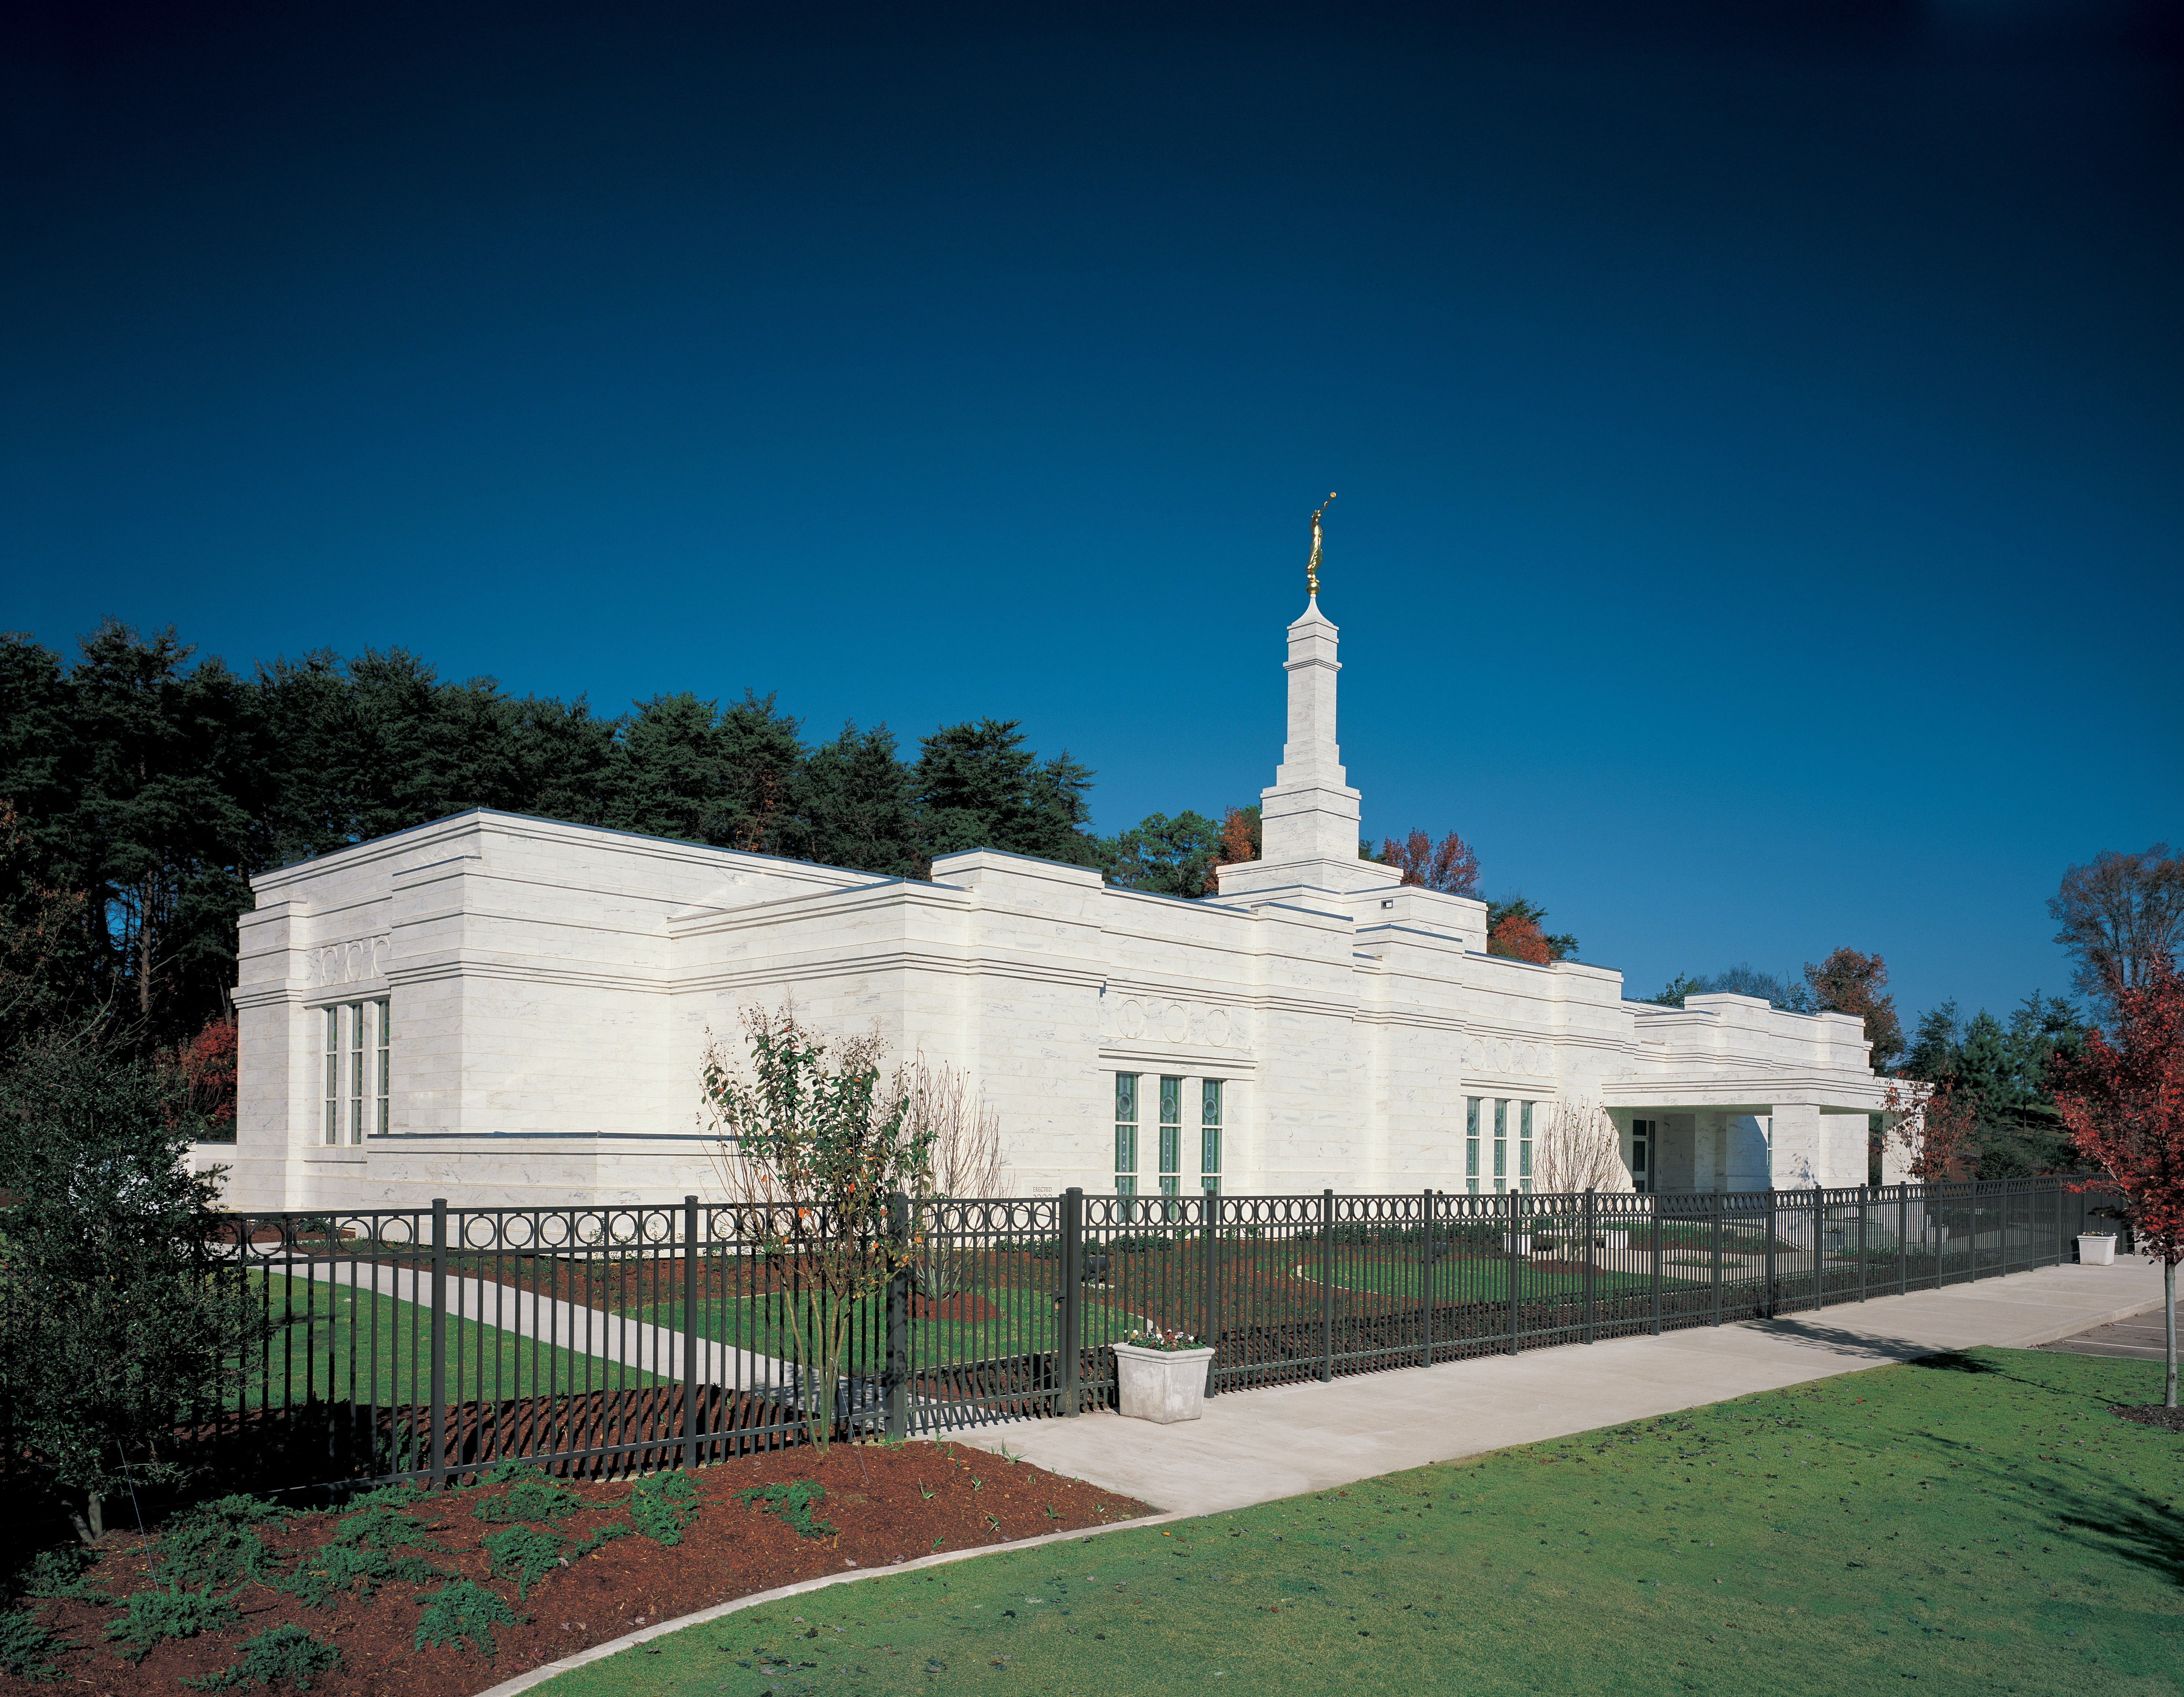 The Birmingham Alabama Temple and surrounding landscape.